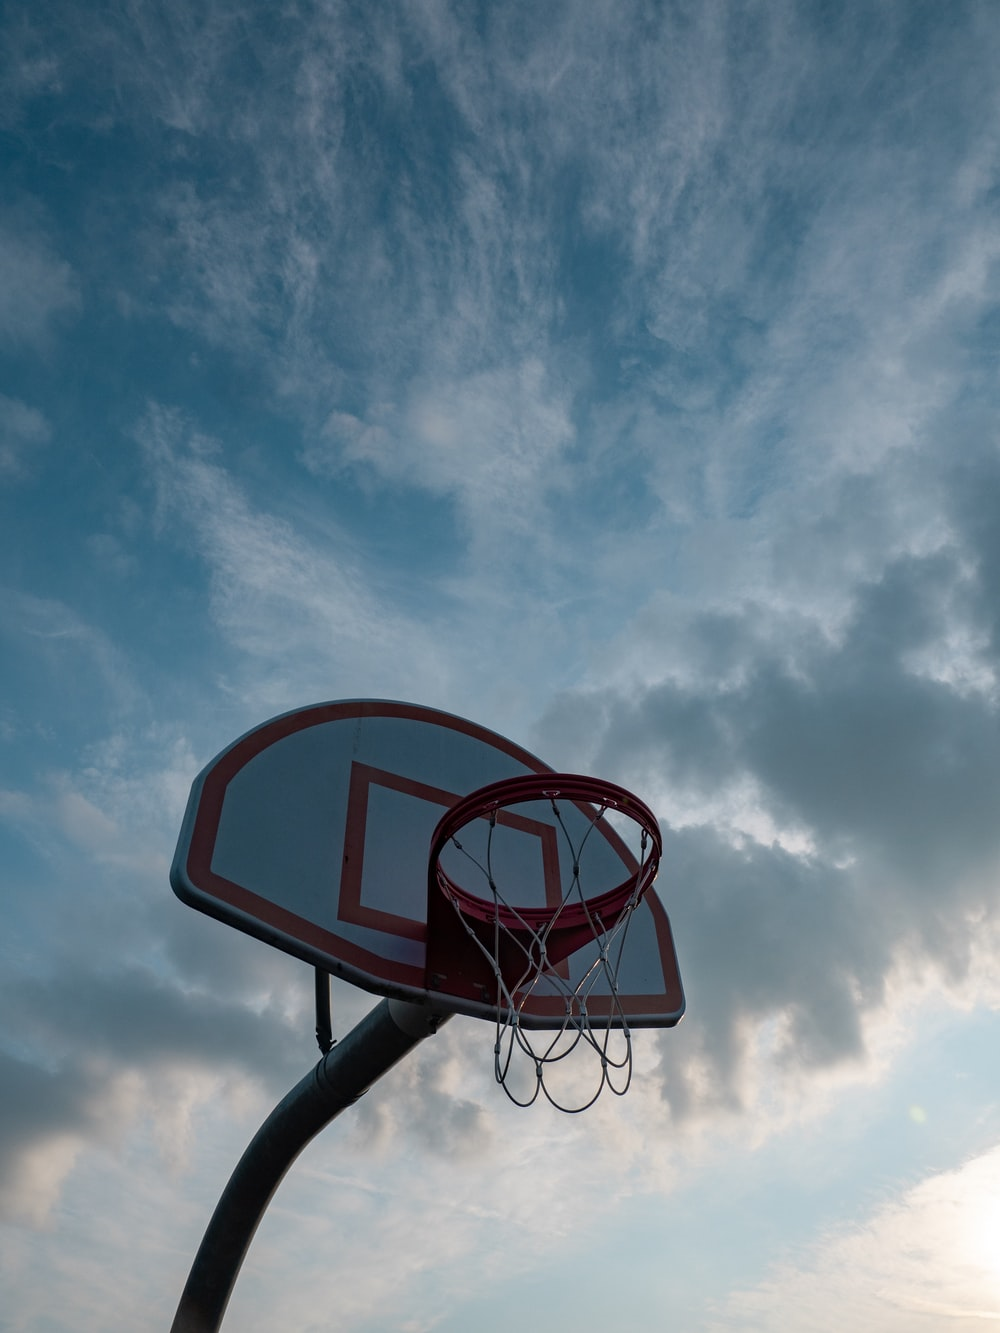 white and red basketball hoop during day